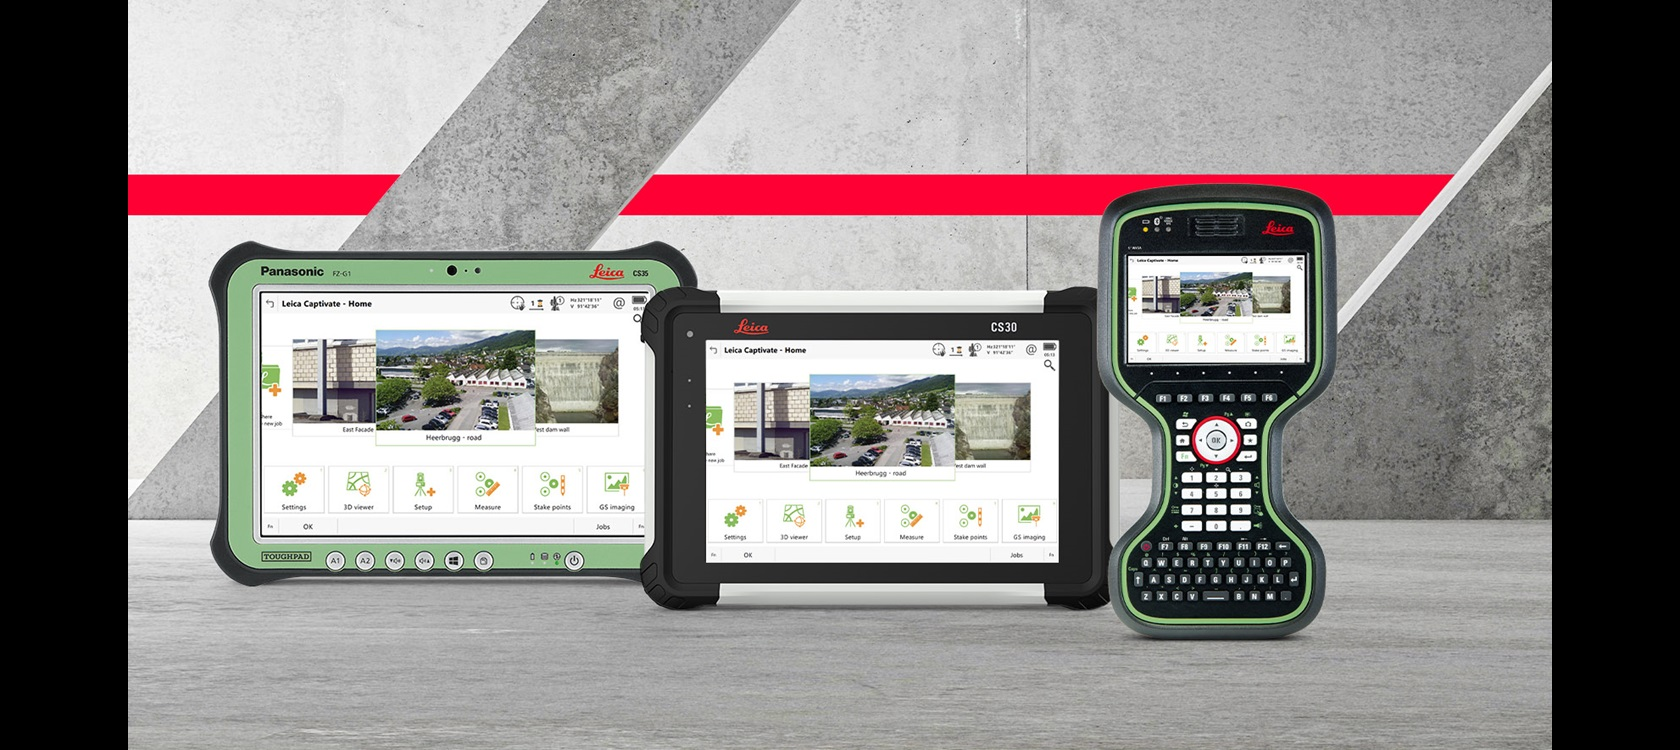 Leica Captivate CS20 & CS35 - Controller & Tablet